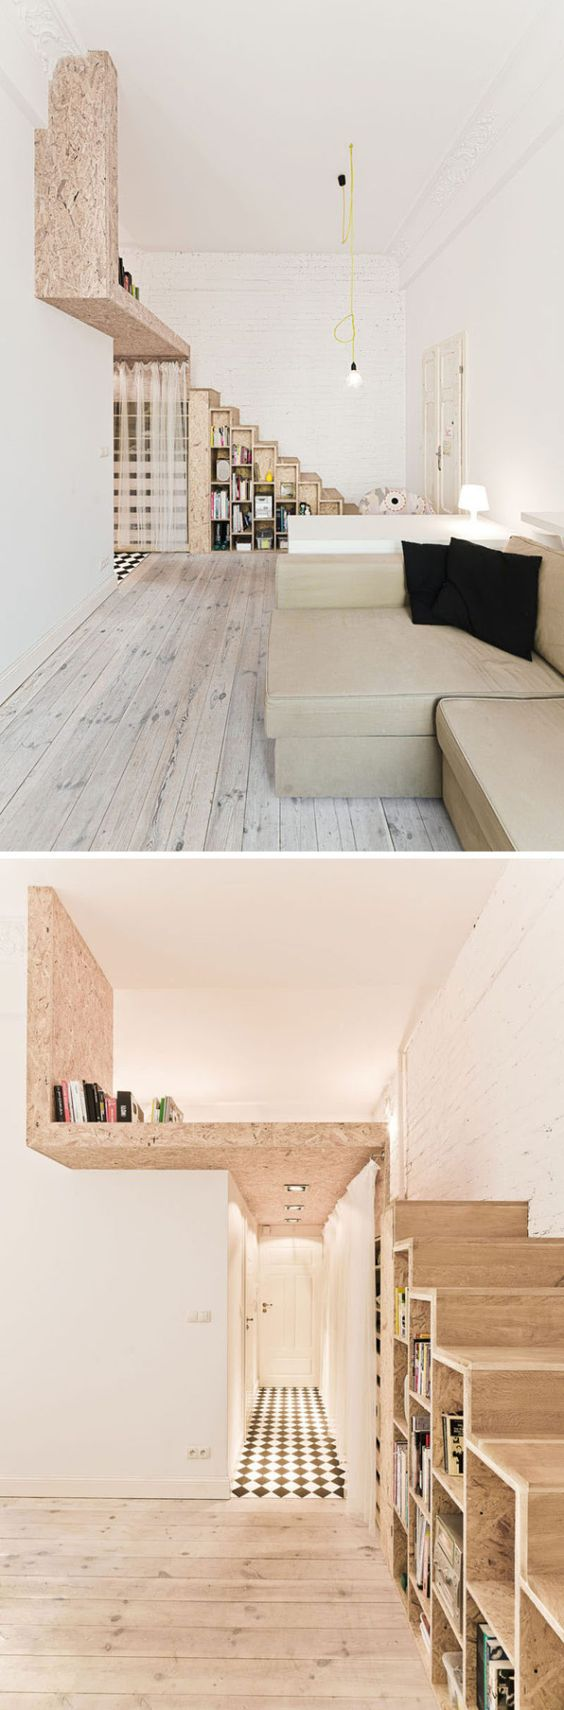 13 Stair Design Ideas For Small Spaces // The Stairs Along The Side Wall Of